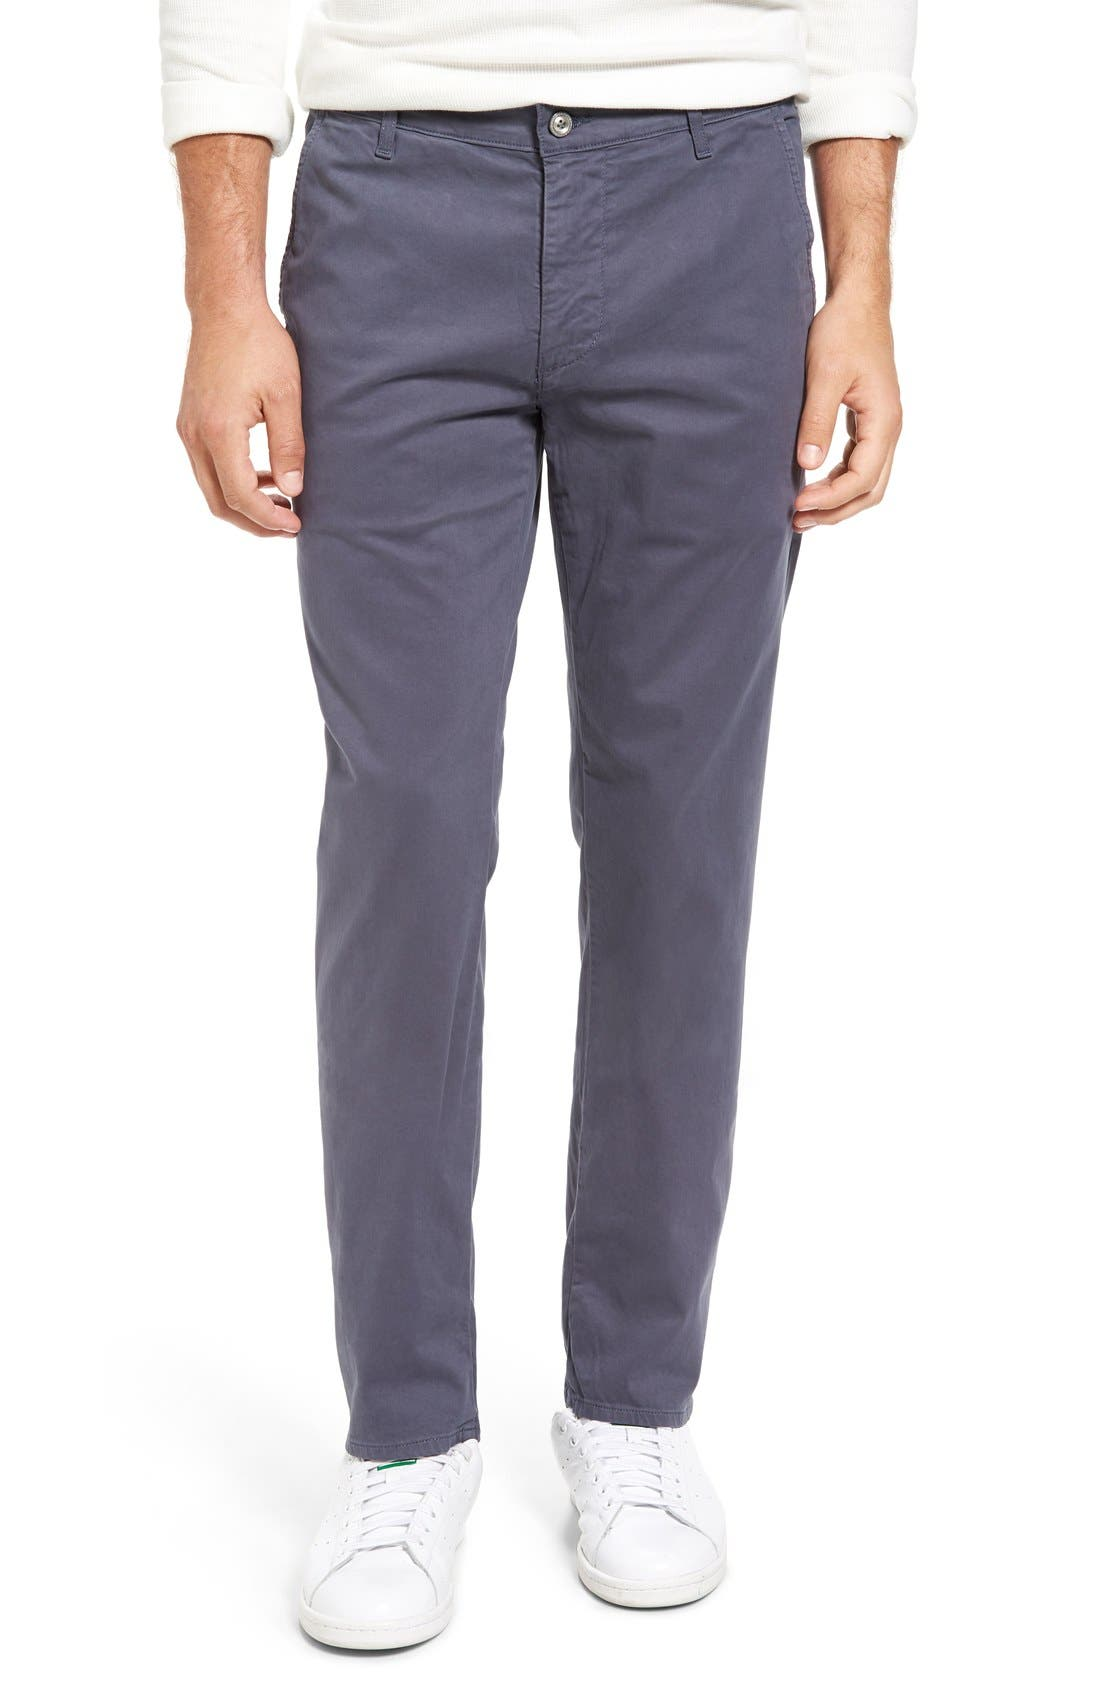 'The Lux' Tailored Straight Leg Chinos,                             Main thumbnail 9, color,